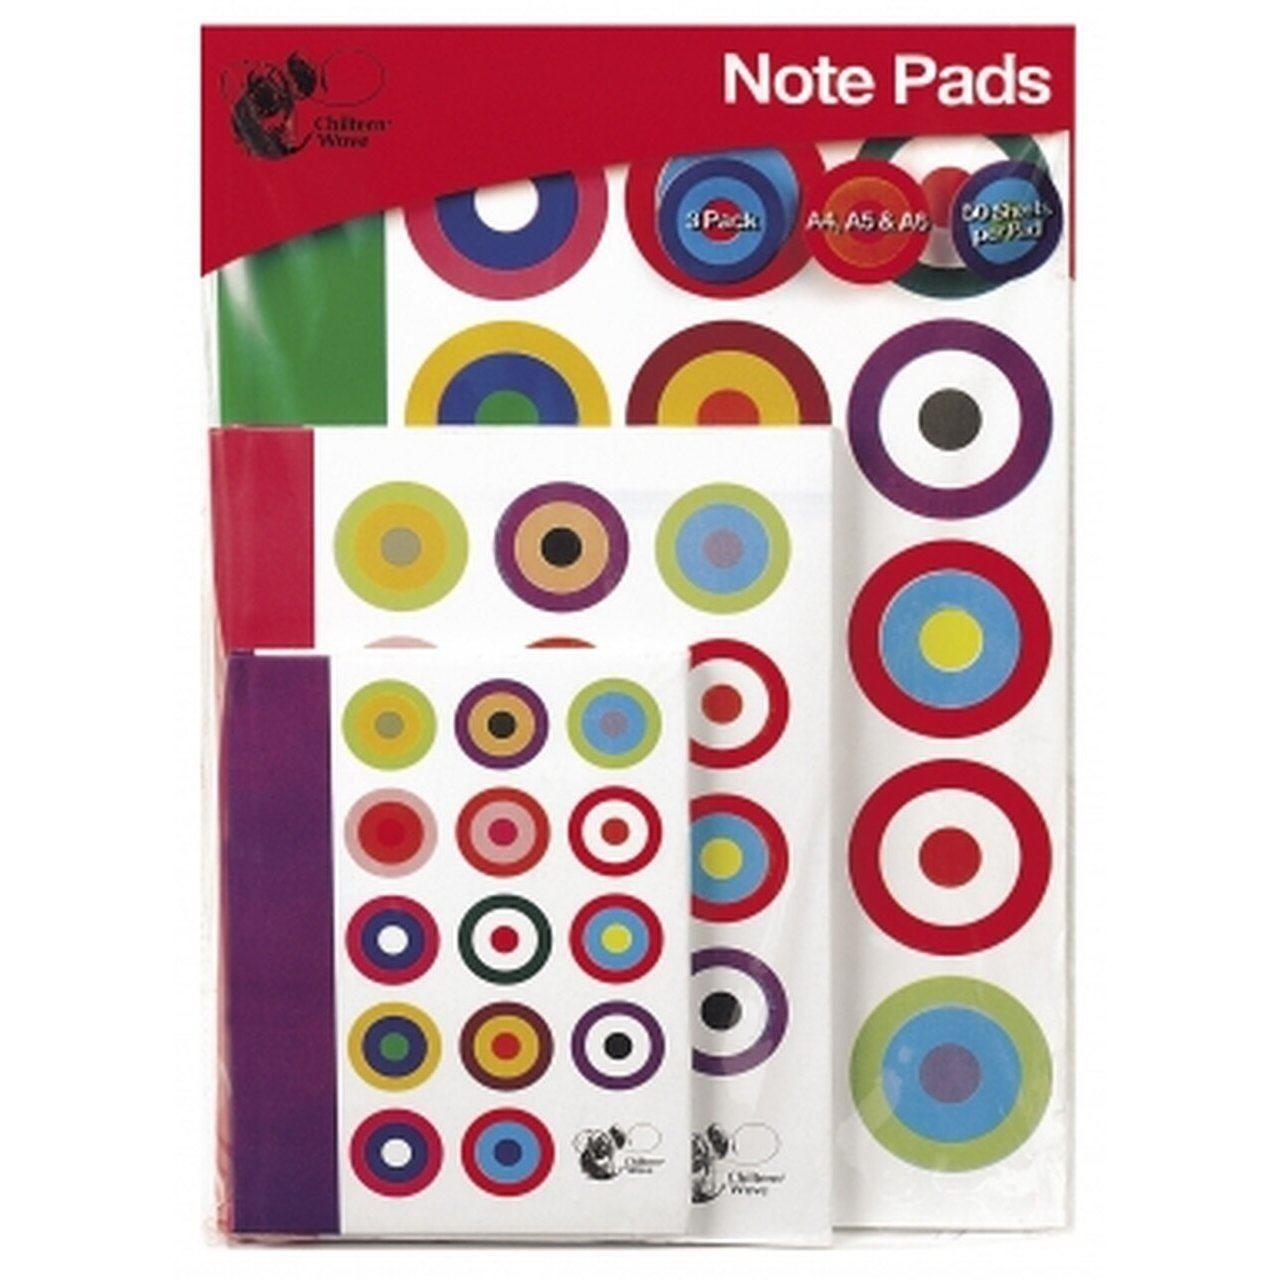 Note Pads A6/A5/A4 (3 Pack)